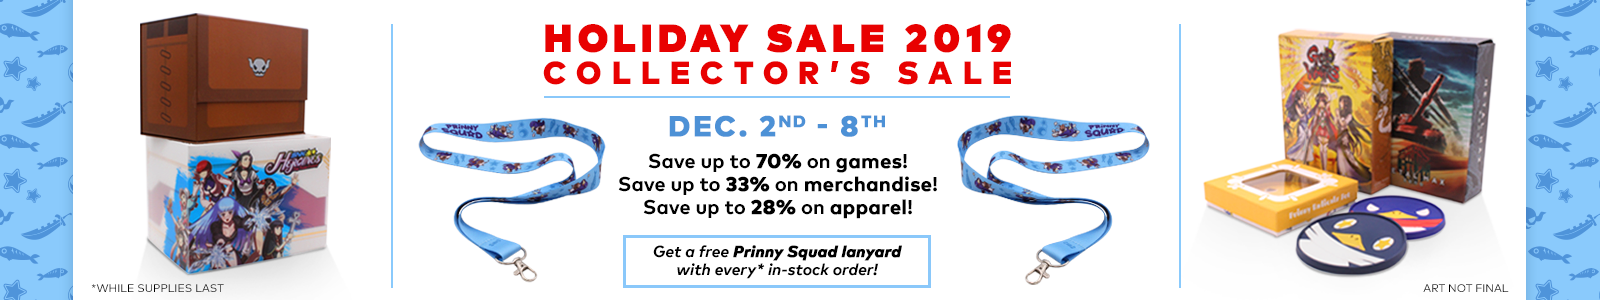 Holiday Sale 2019: Collector's Sale